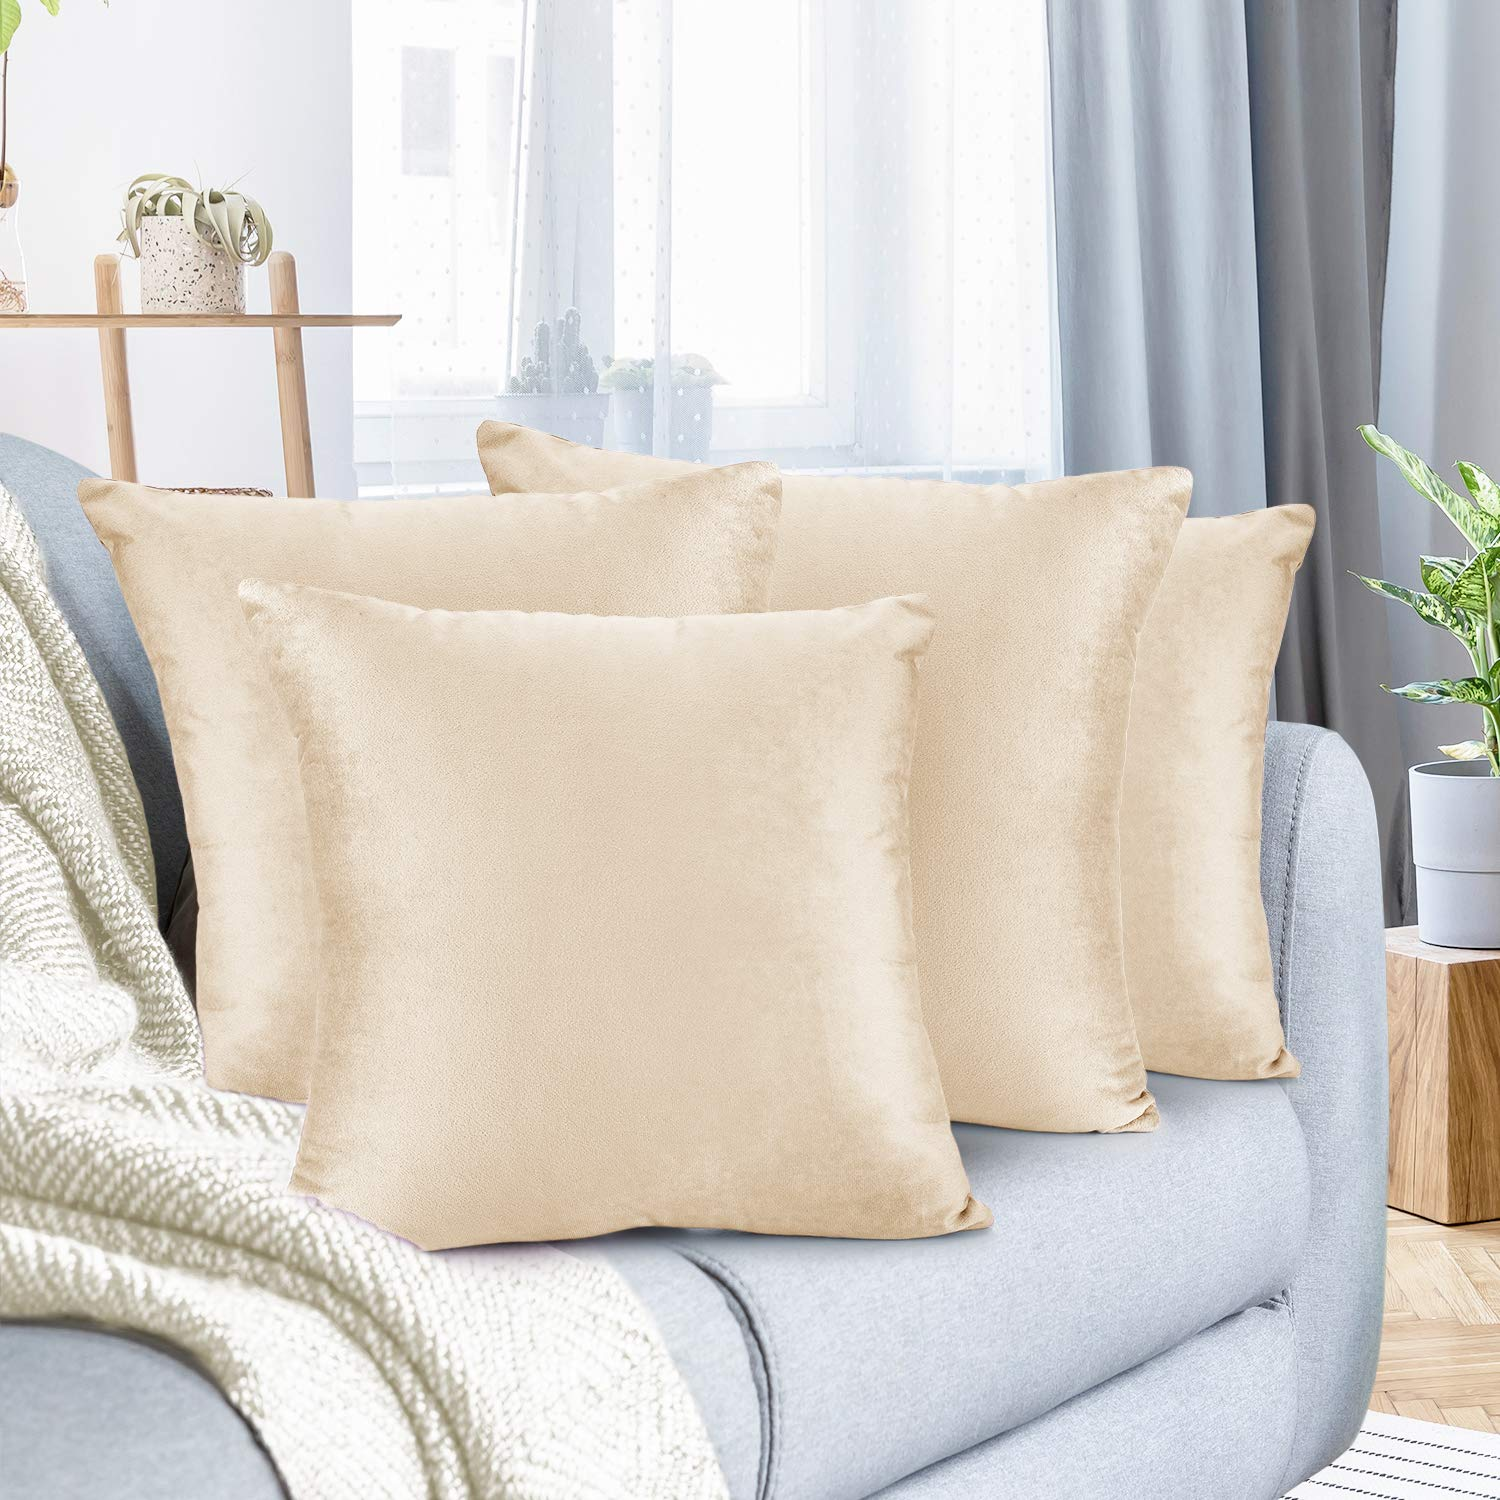 """Nestl Bedding Throw Pillow Cover 16"""" x 16"""" Soft Square Decorative Throw Pillow Covers Cozy Velvet Cushion Case for Sofa Couch Bedroom, Set of 4, Beige Cream"""